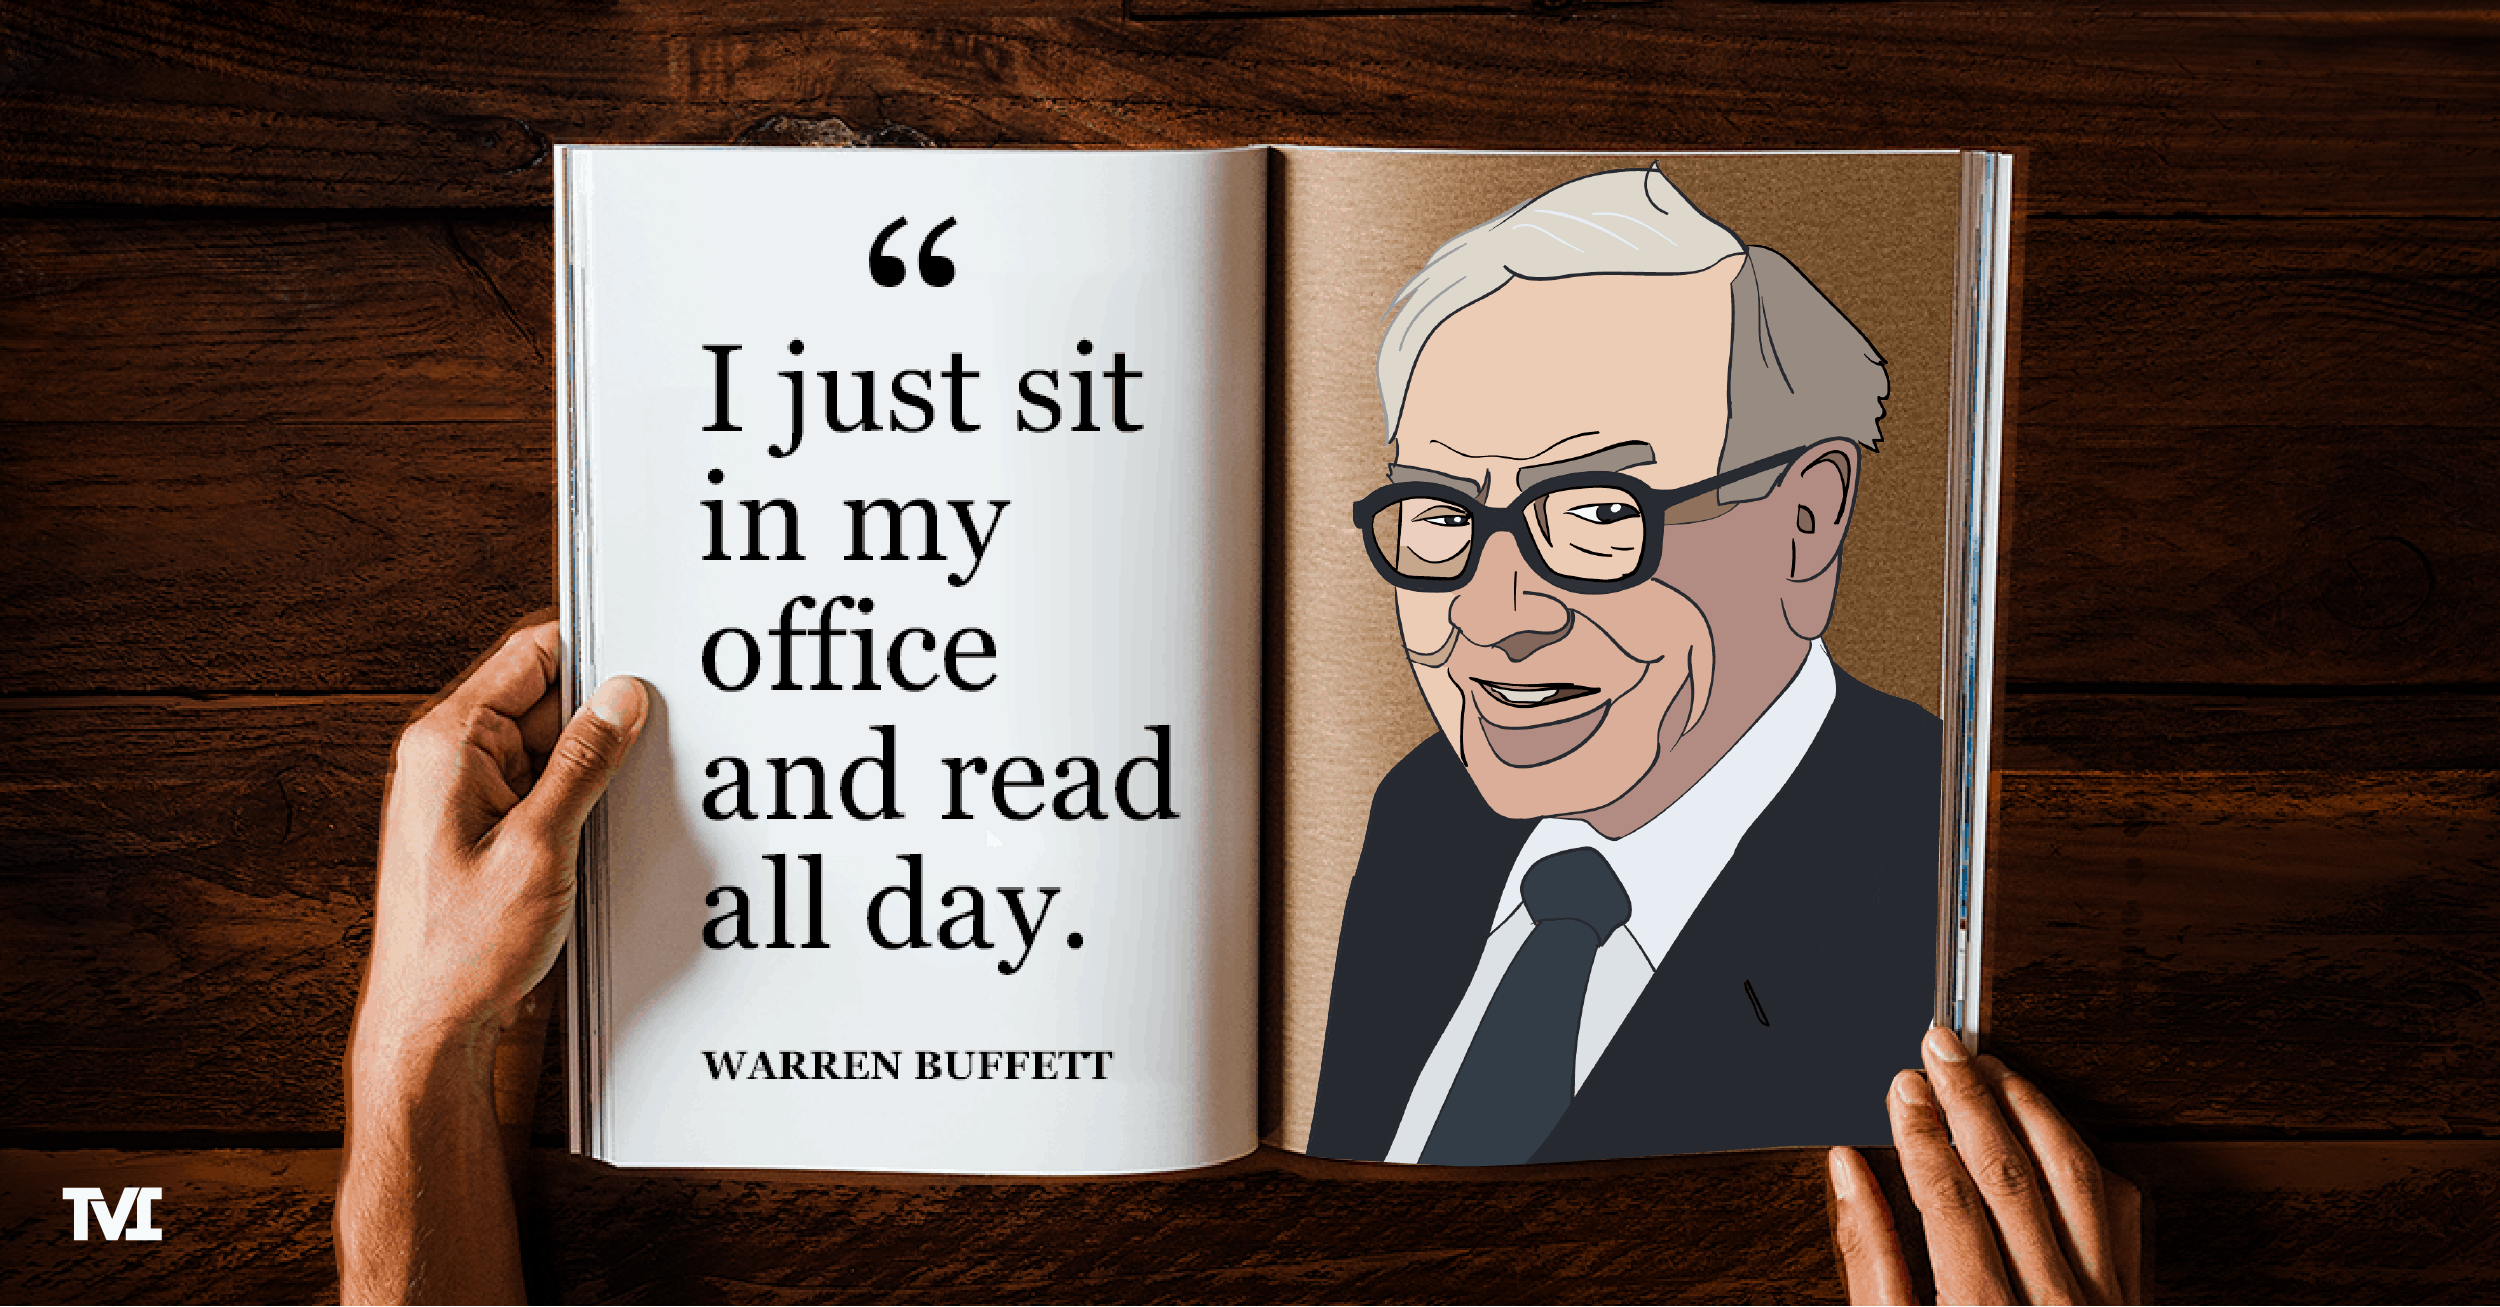 "Warren Buffett quote on magazine with an illustration of Buffett: ""I just sit in my office and read all day."""